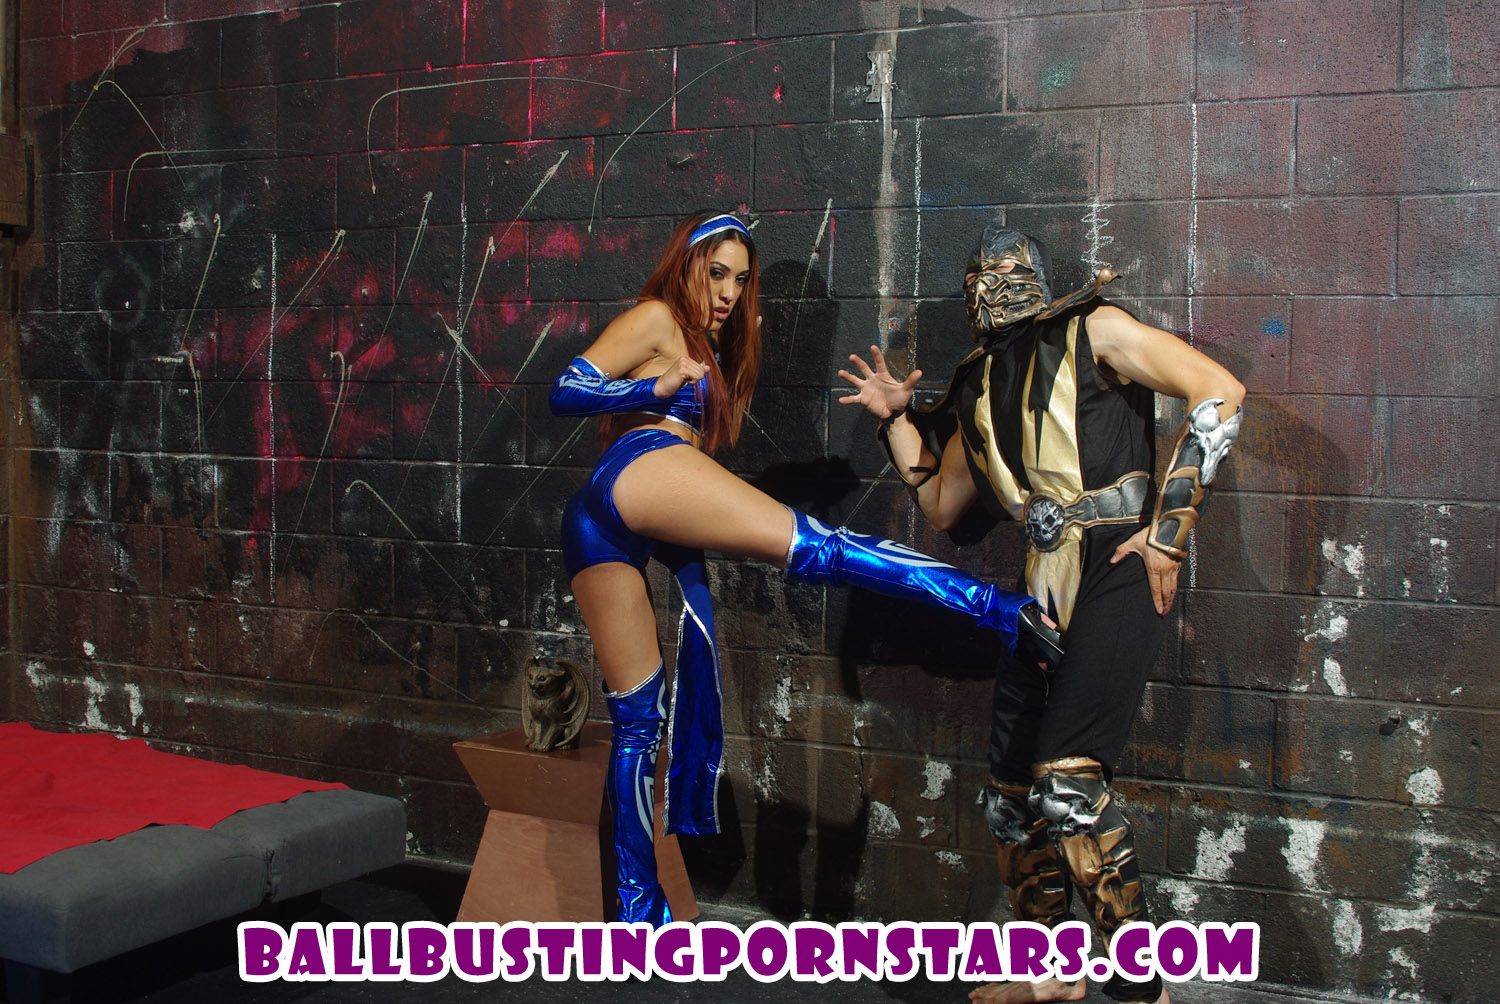 Kitana and Scorpion Mortal Kombat Ballbusting